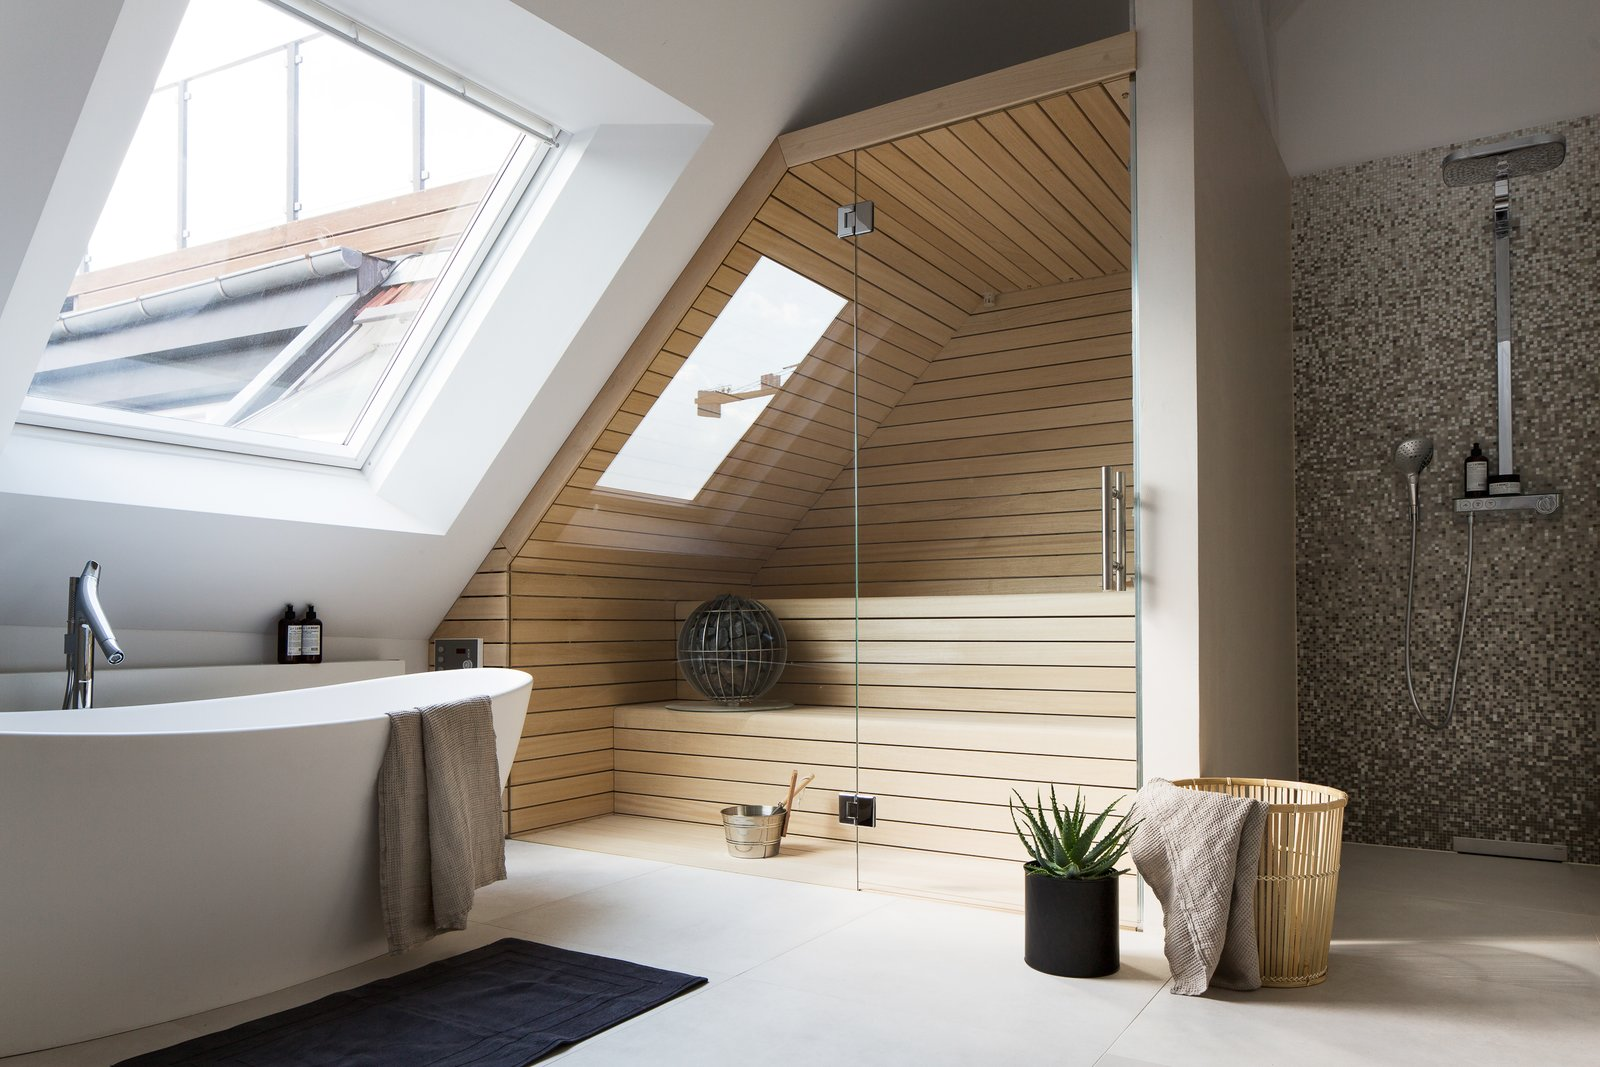 Top 5 Homes of the Week With Spa-Like Bathrooms